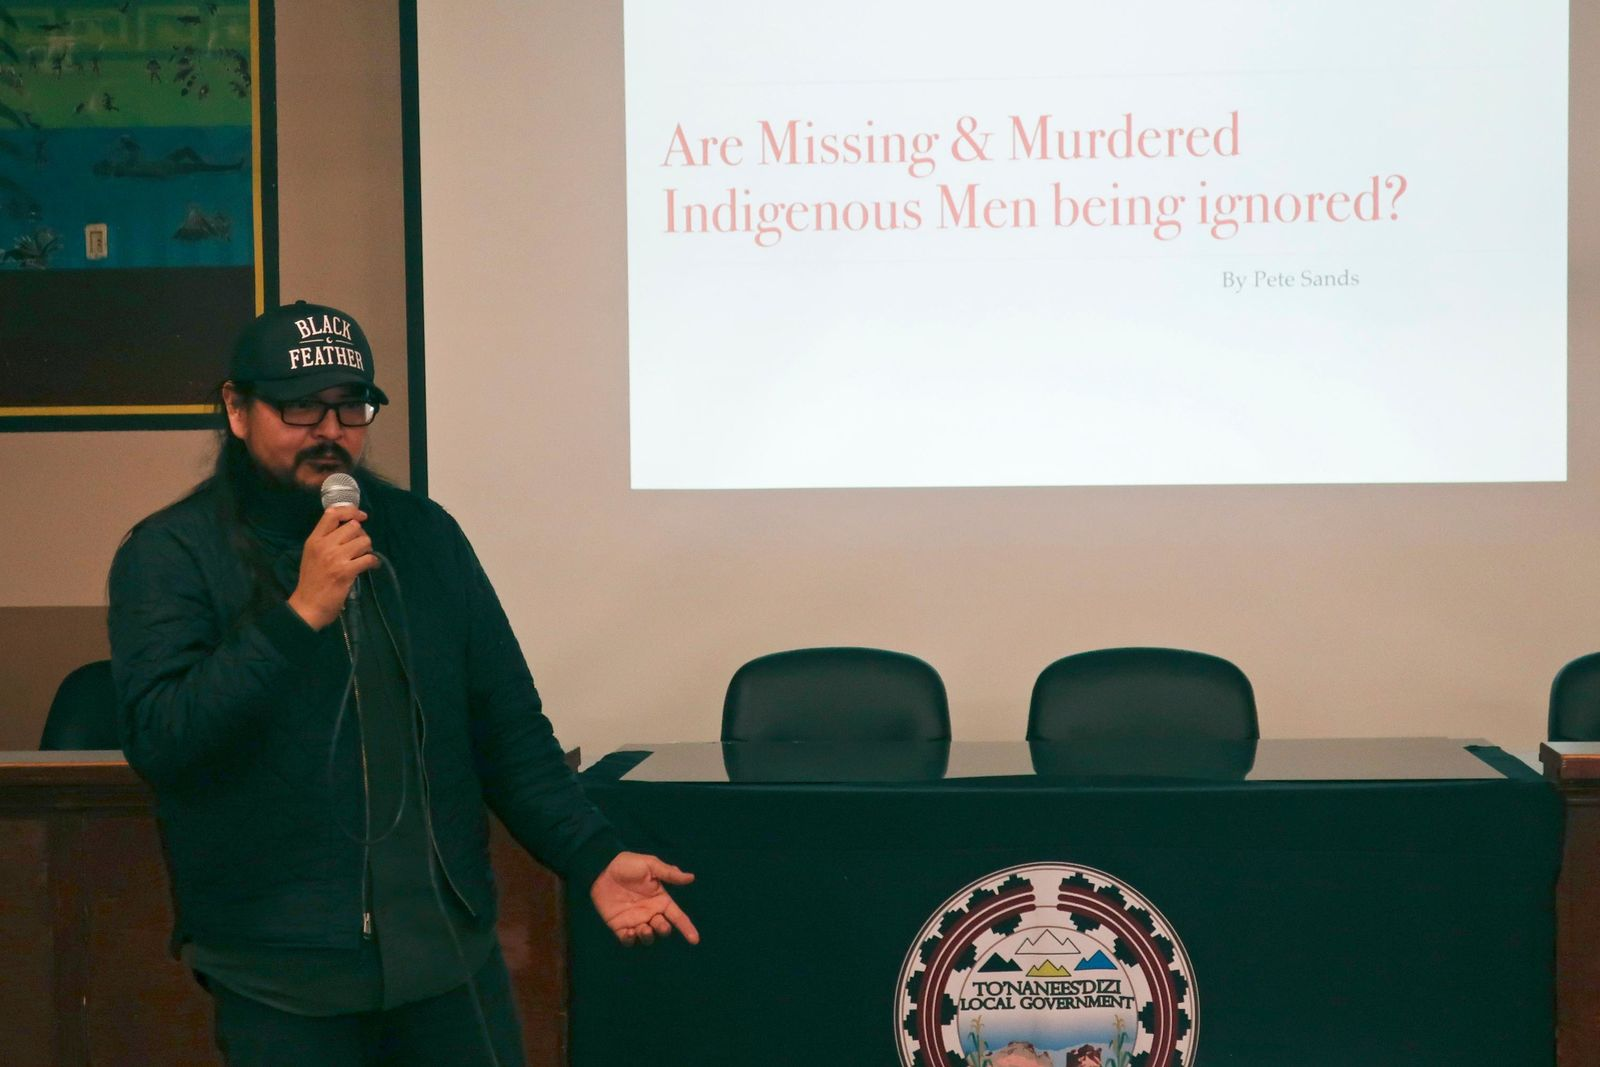 In this Jan. 14, 2020, photo, Navajo musician and filmmaker Pete Sands talks about missing indigenous men at a forum in Tuba City, Ariz. People were gathered to talk not about women and girls who have disappeared or been killed, but men. It's a shift from a larger movement focused on Native American women, who face some of the nation's highest homicide, sexual violence and domestic abuse rates. (AP Photo/Felicia Fonseca)